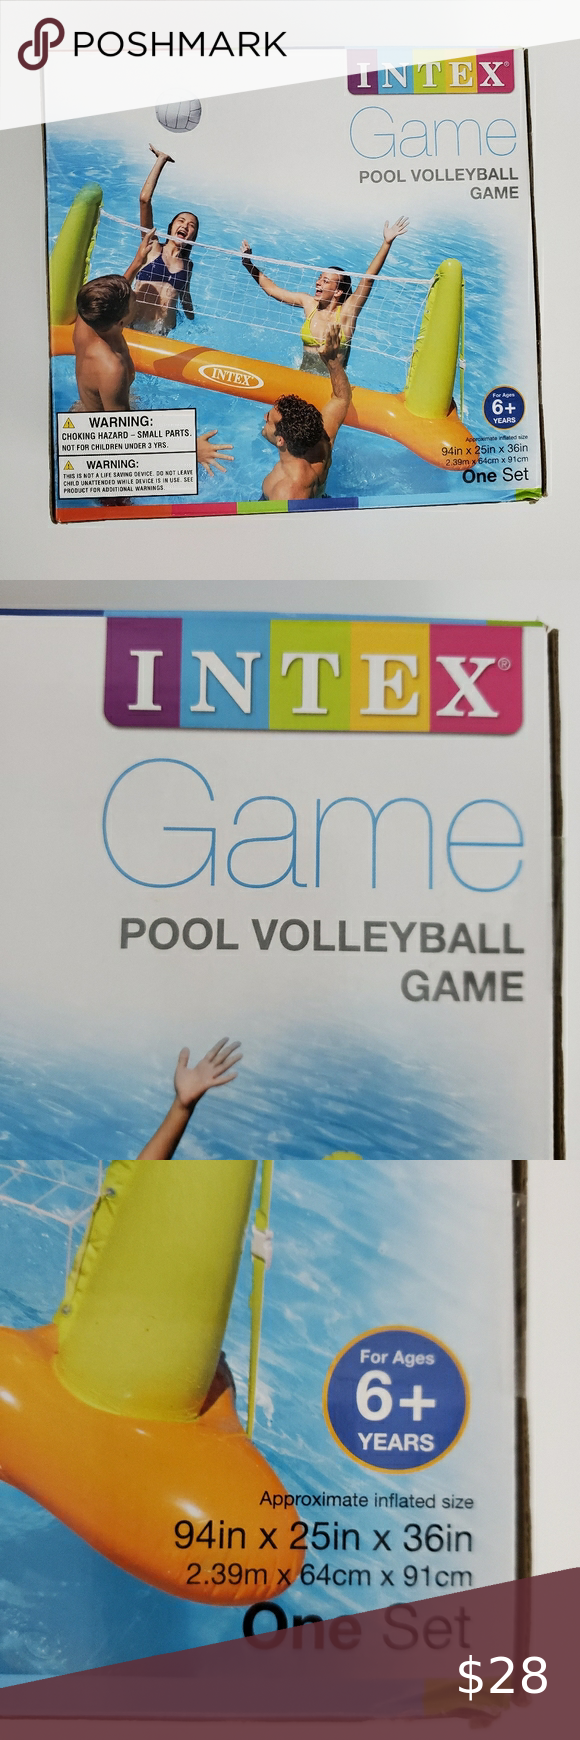 Intex Inflatable Pool Volleyball Set In 2020 Volleyball Set Inflatable Pool Intex